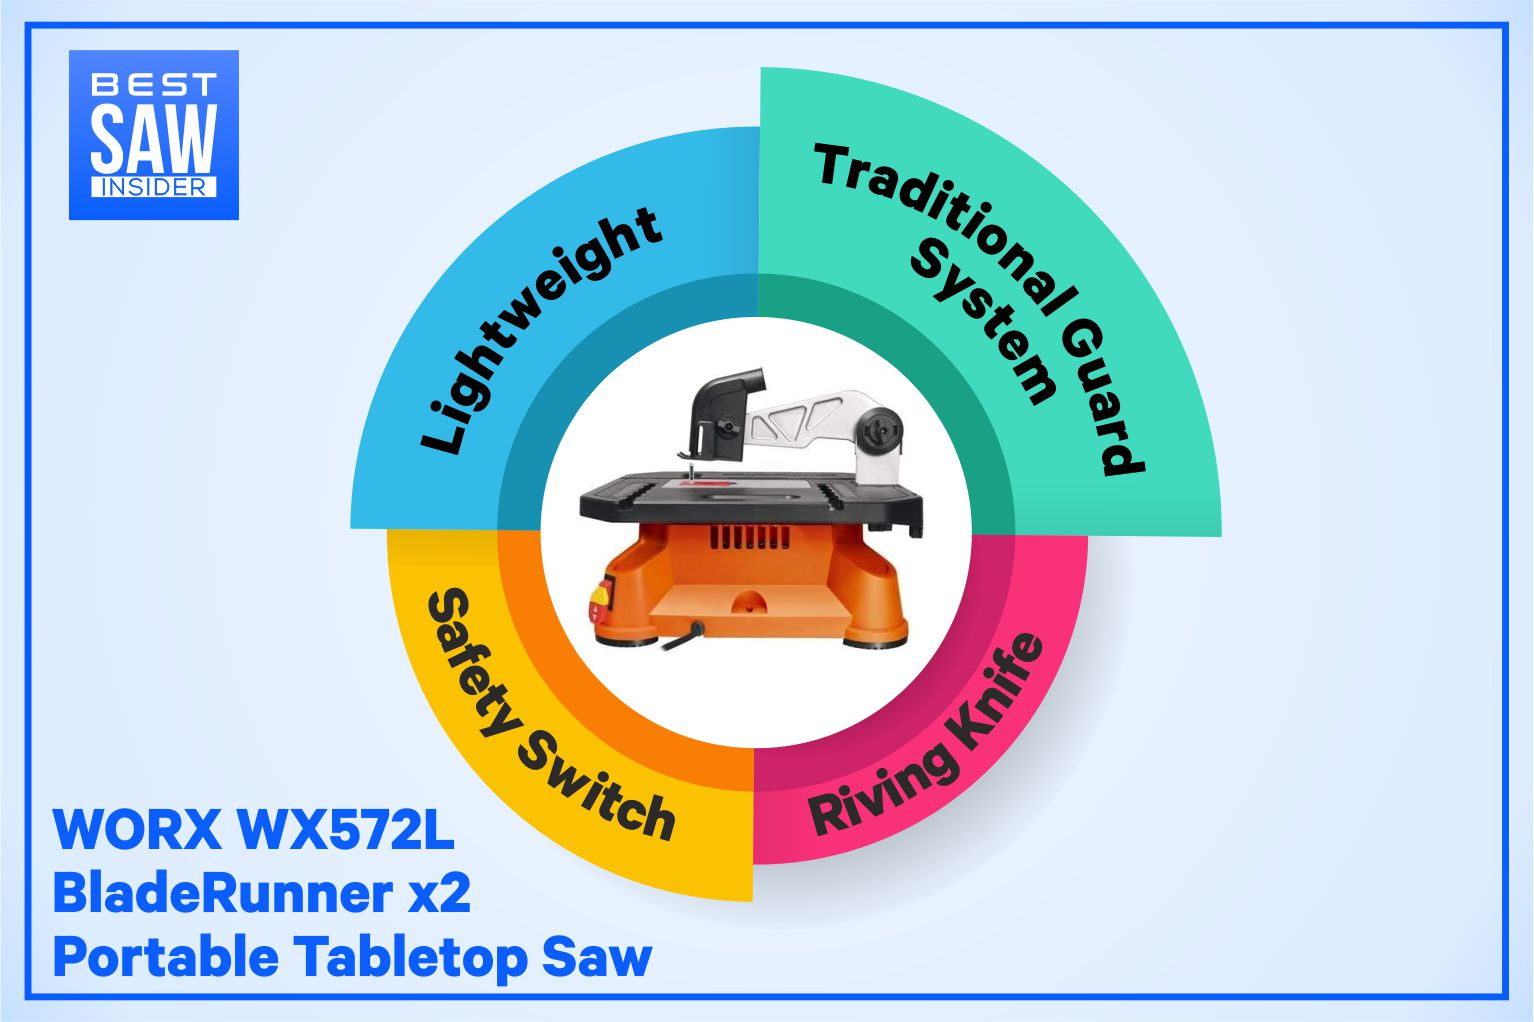 WORX WX572L BladeRunner x2 Portable Tabletop Saw infographic